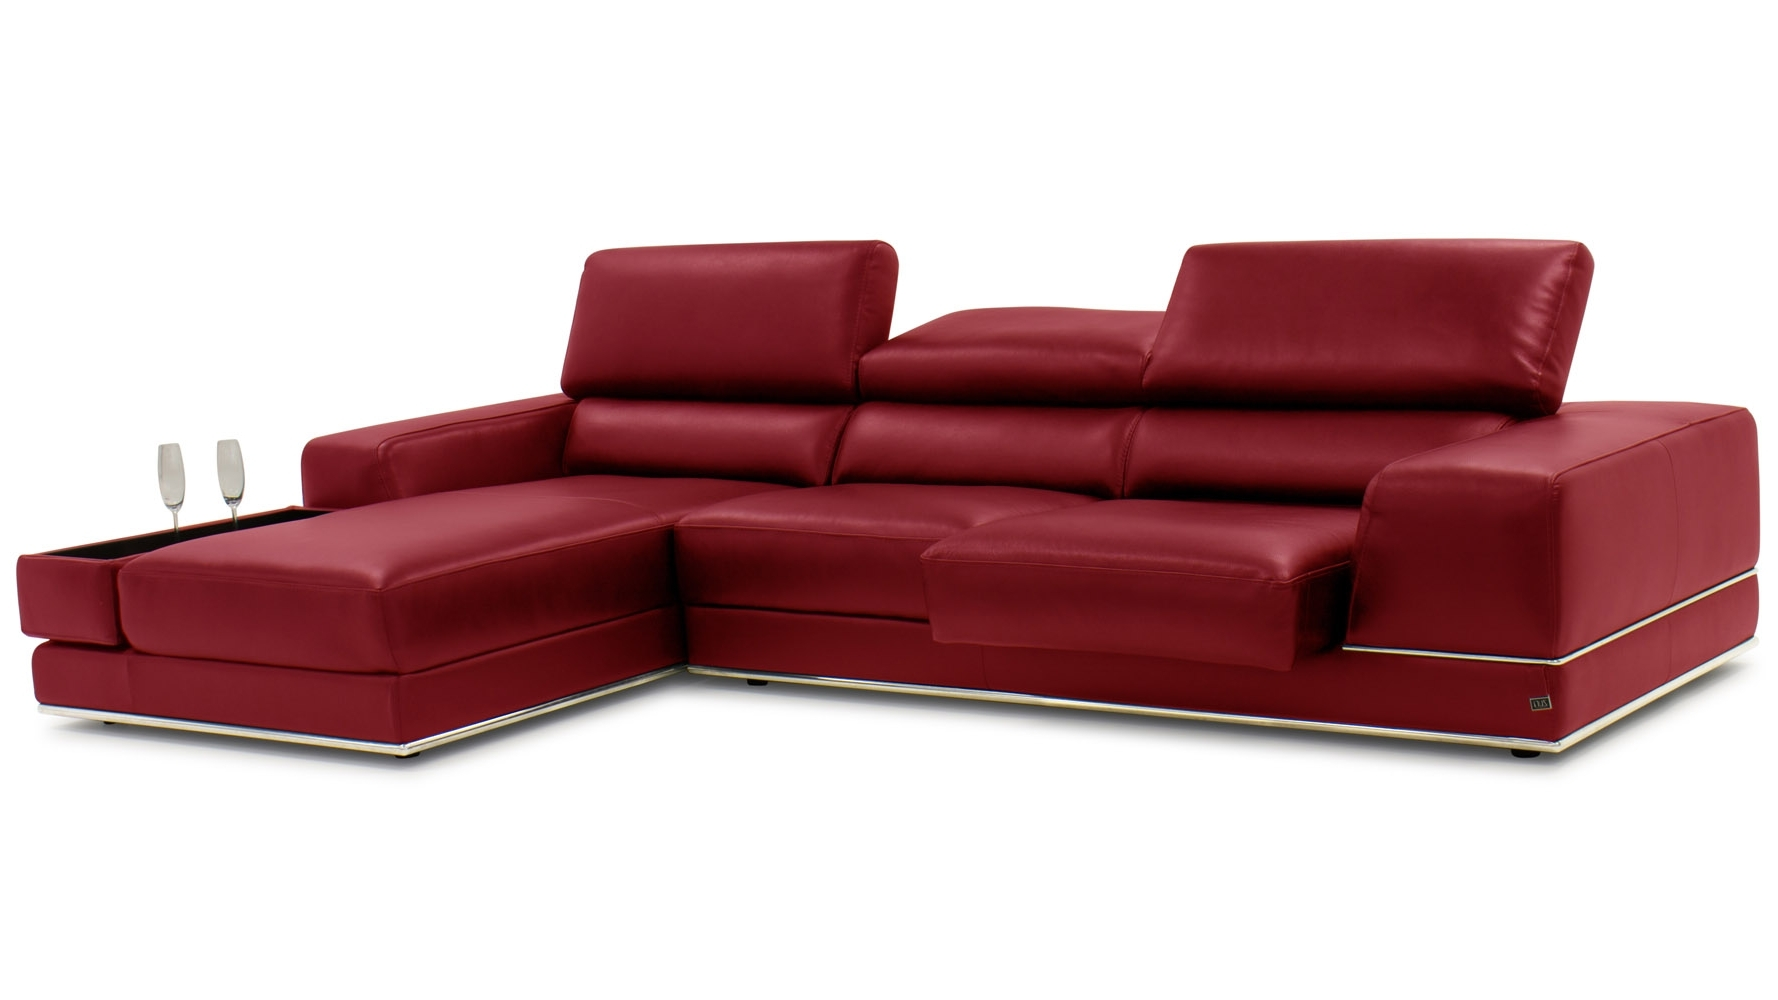 Zuri Furniture With Regard To Most Recent Red Leather Chaises (View 15 of 15)